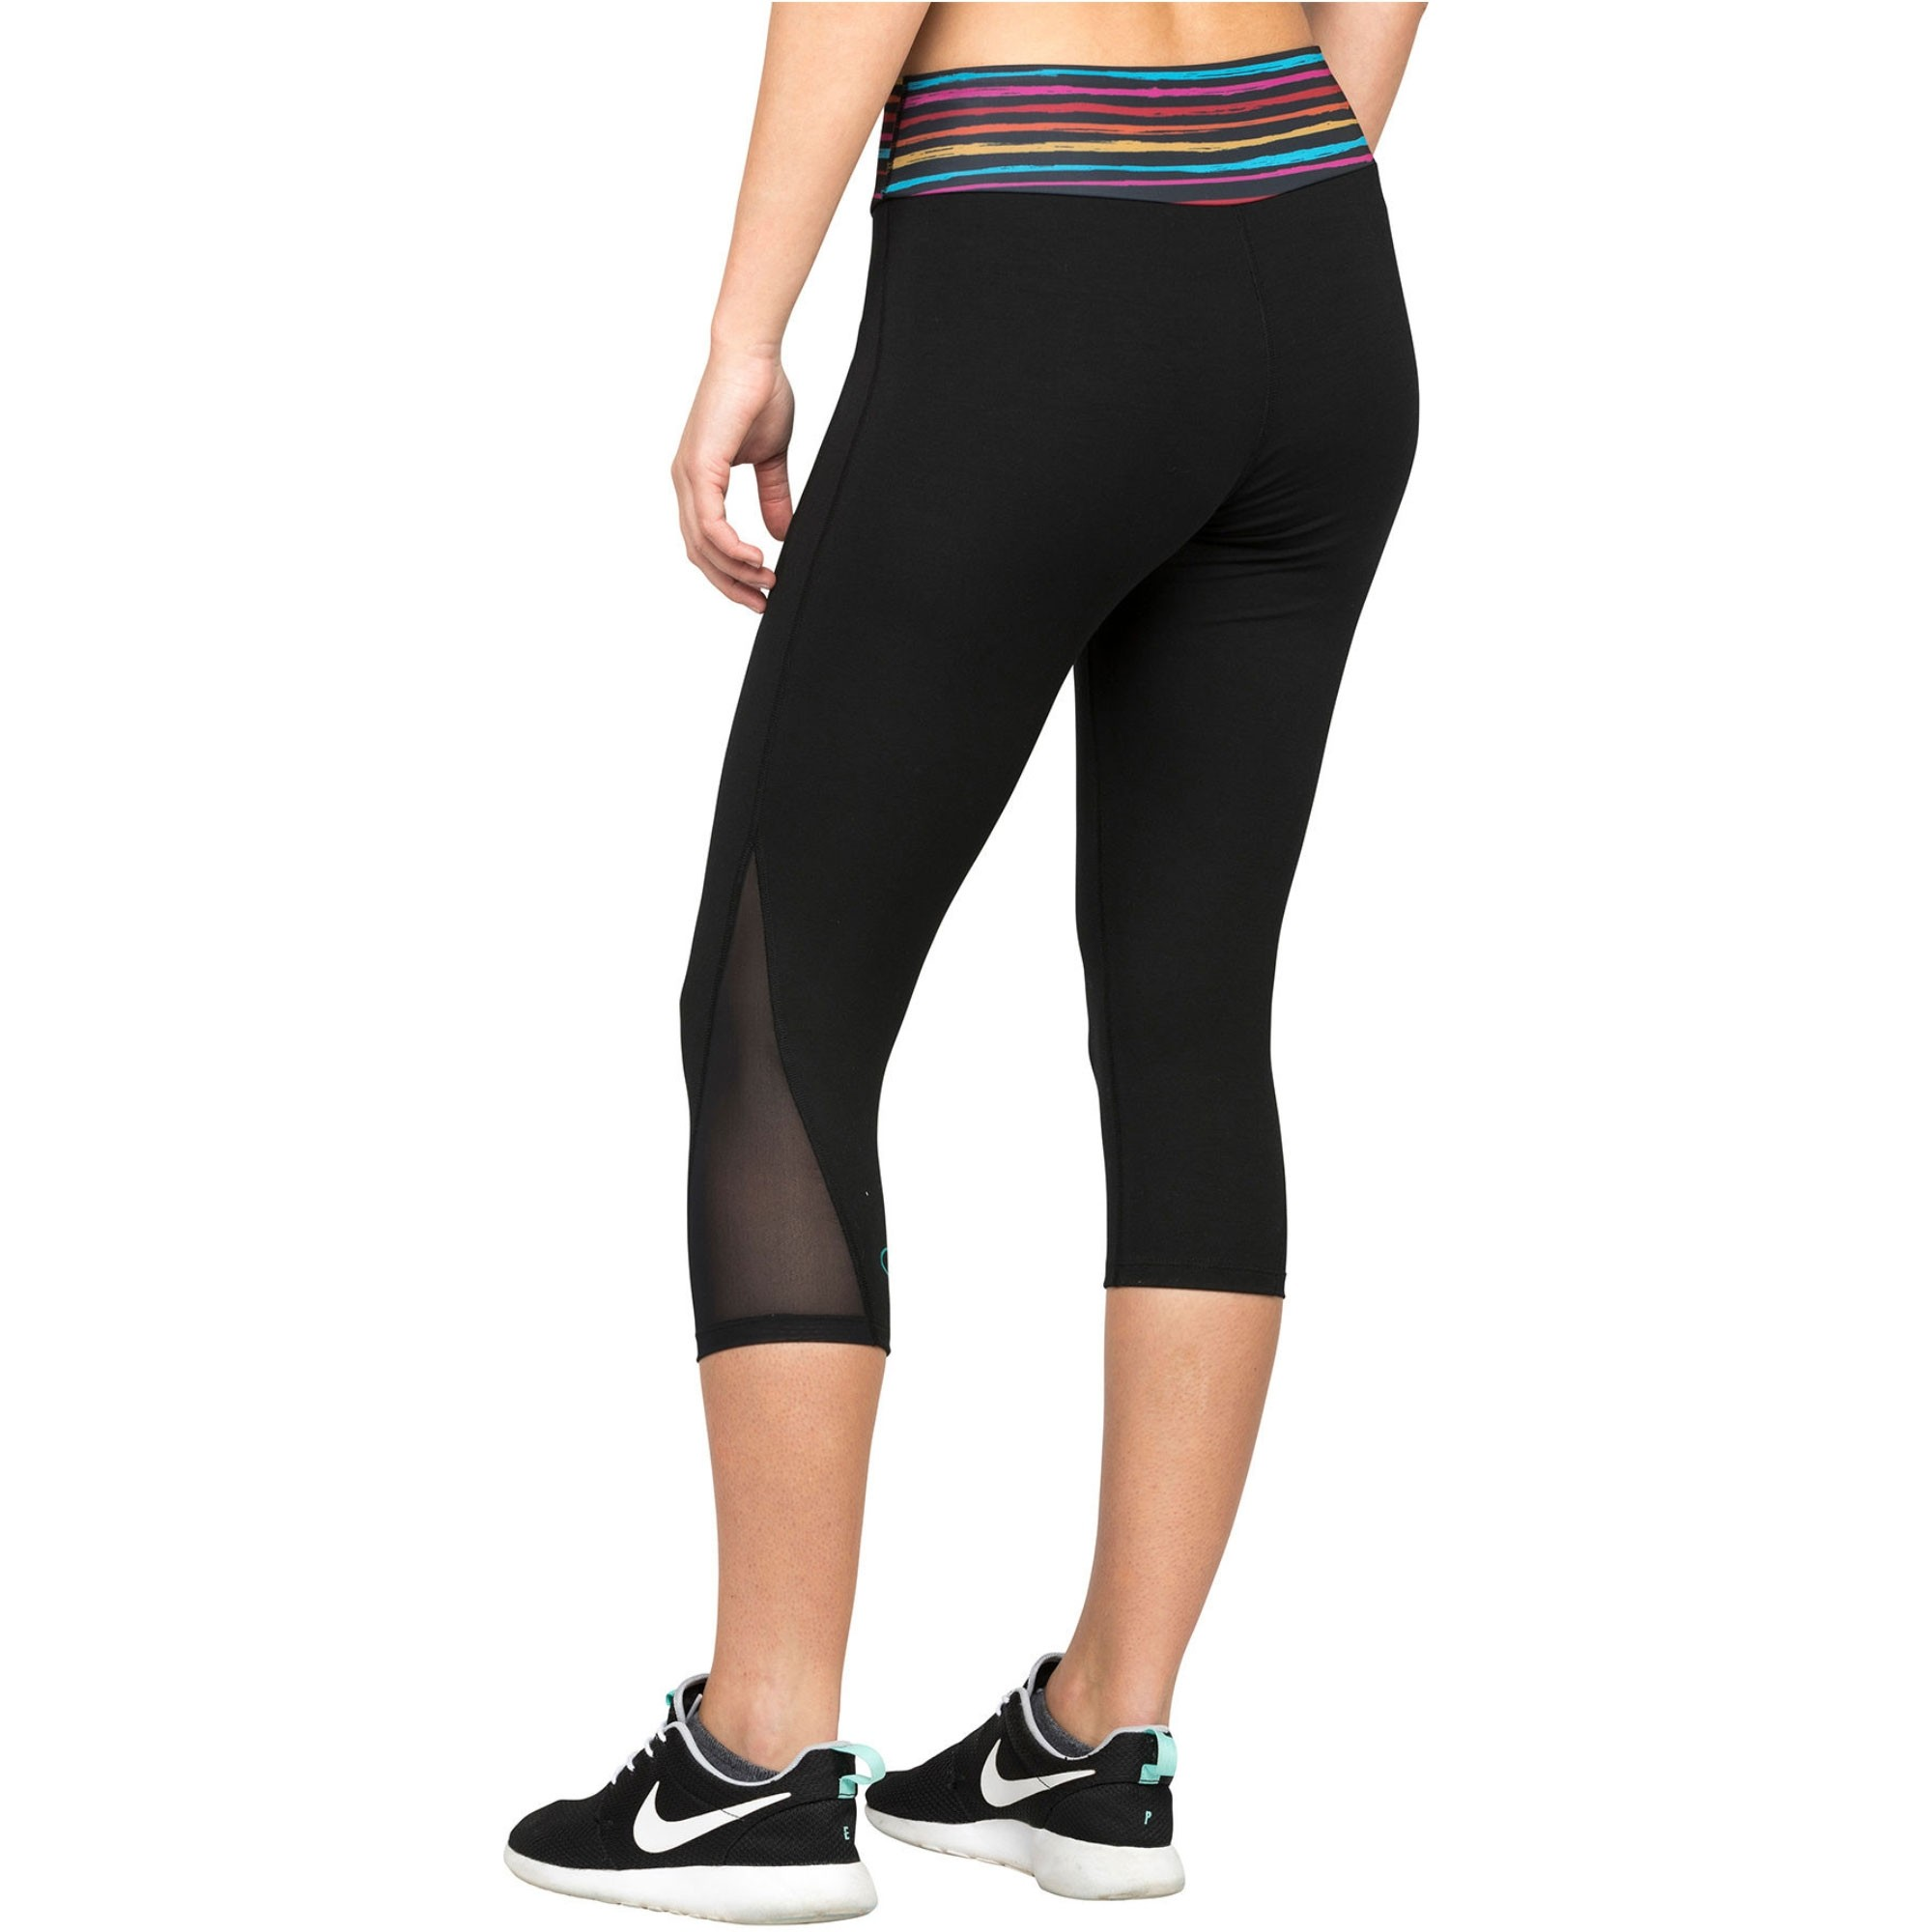 Chillaz Women's Sundergrund 3/4 Pants - Black - Back